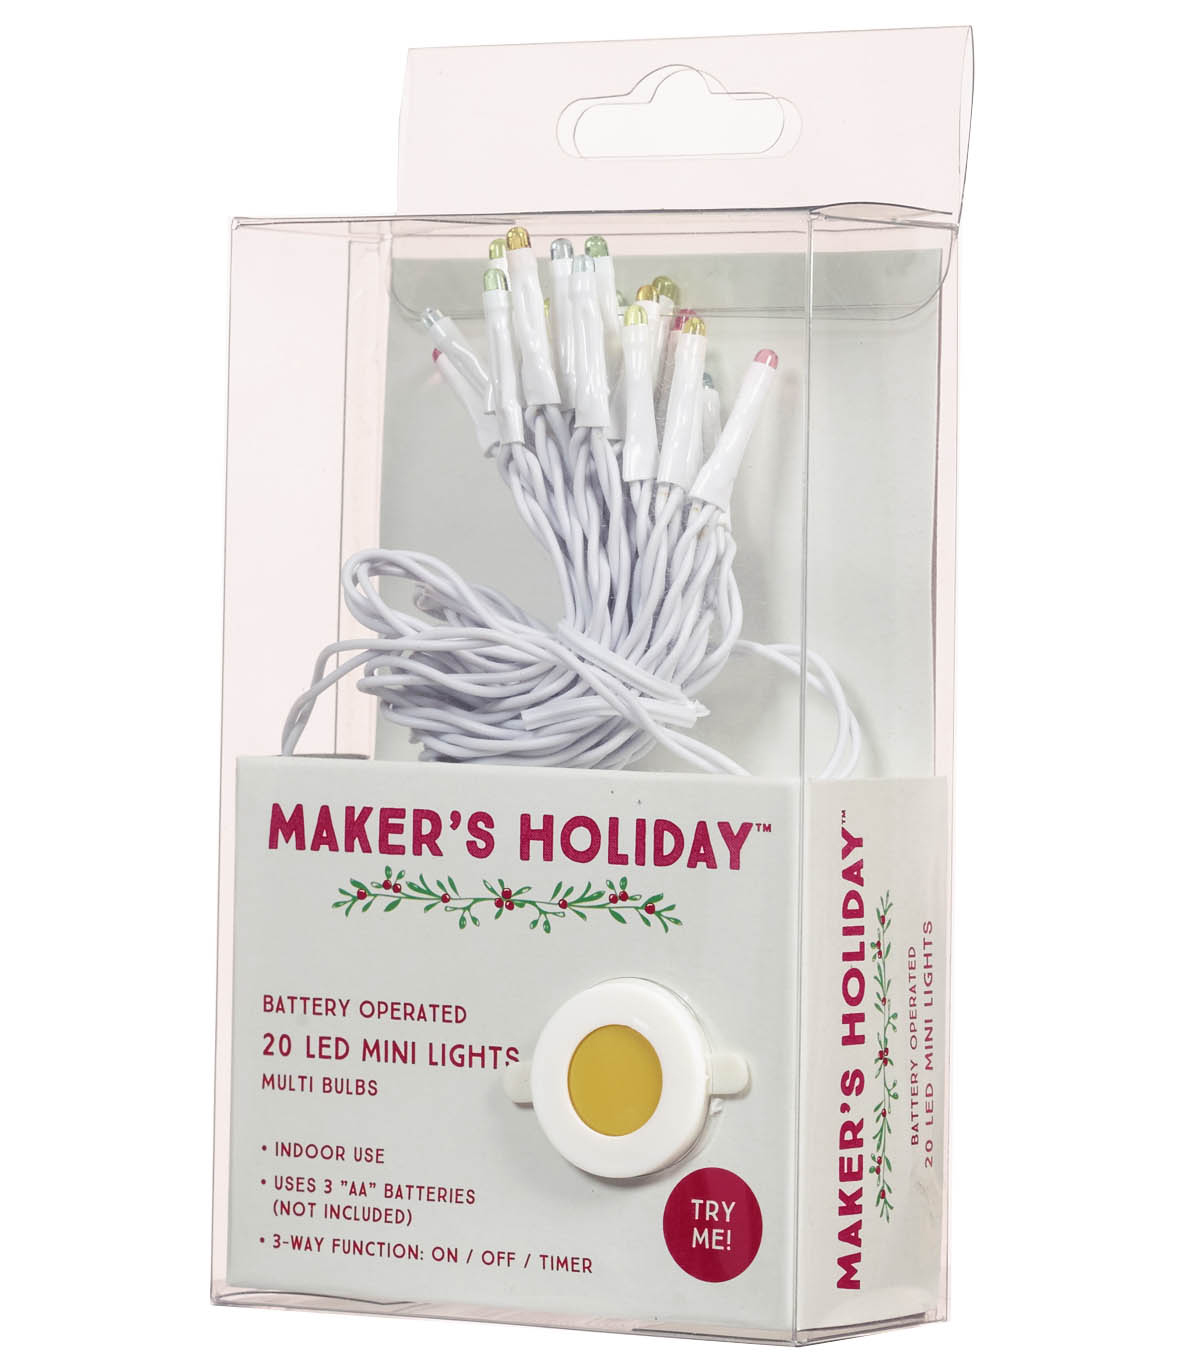 Maker's Holiday 20ct LED Mini Lights-Multicolored Bulbs